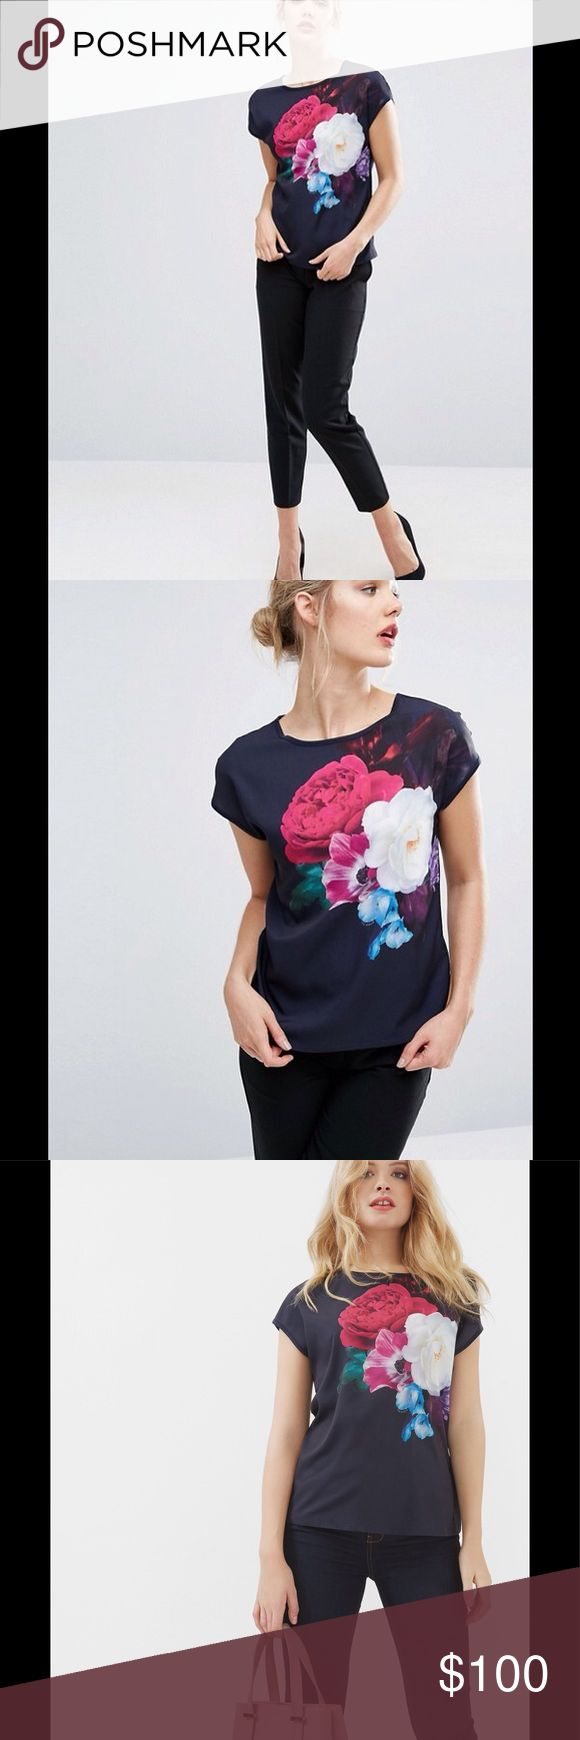 """NEW IN!!!💝💘💖 ZEENA T - Shirt Add a touch of romance to your weekend ensembles with the charming ZEANA T-shirt. Flourished with Ted's Blushing Bouquet print, this dreamy piece will team perfectly with your favourite pair of jeans. THE FINER DETAILS Details: * Ted Baker womenswear collection * Blushing Bouquet print * Cap sleeved * Round neck * Our model is 5'9.5"""" and wears a size 2 Care & Fabric: * Fabric Content:Woven: 100% Polyester; Knit: 100% Lyocell * Care information:Hand wash, do…"""